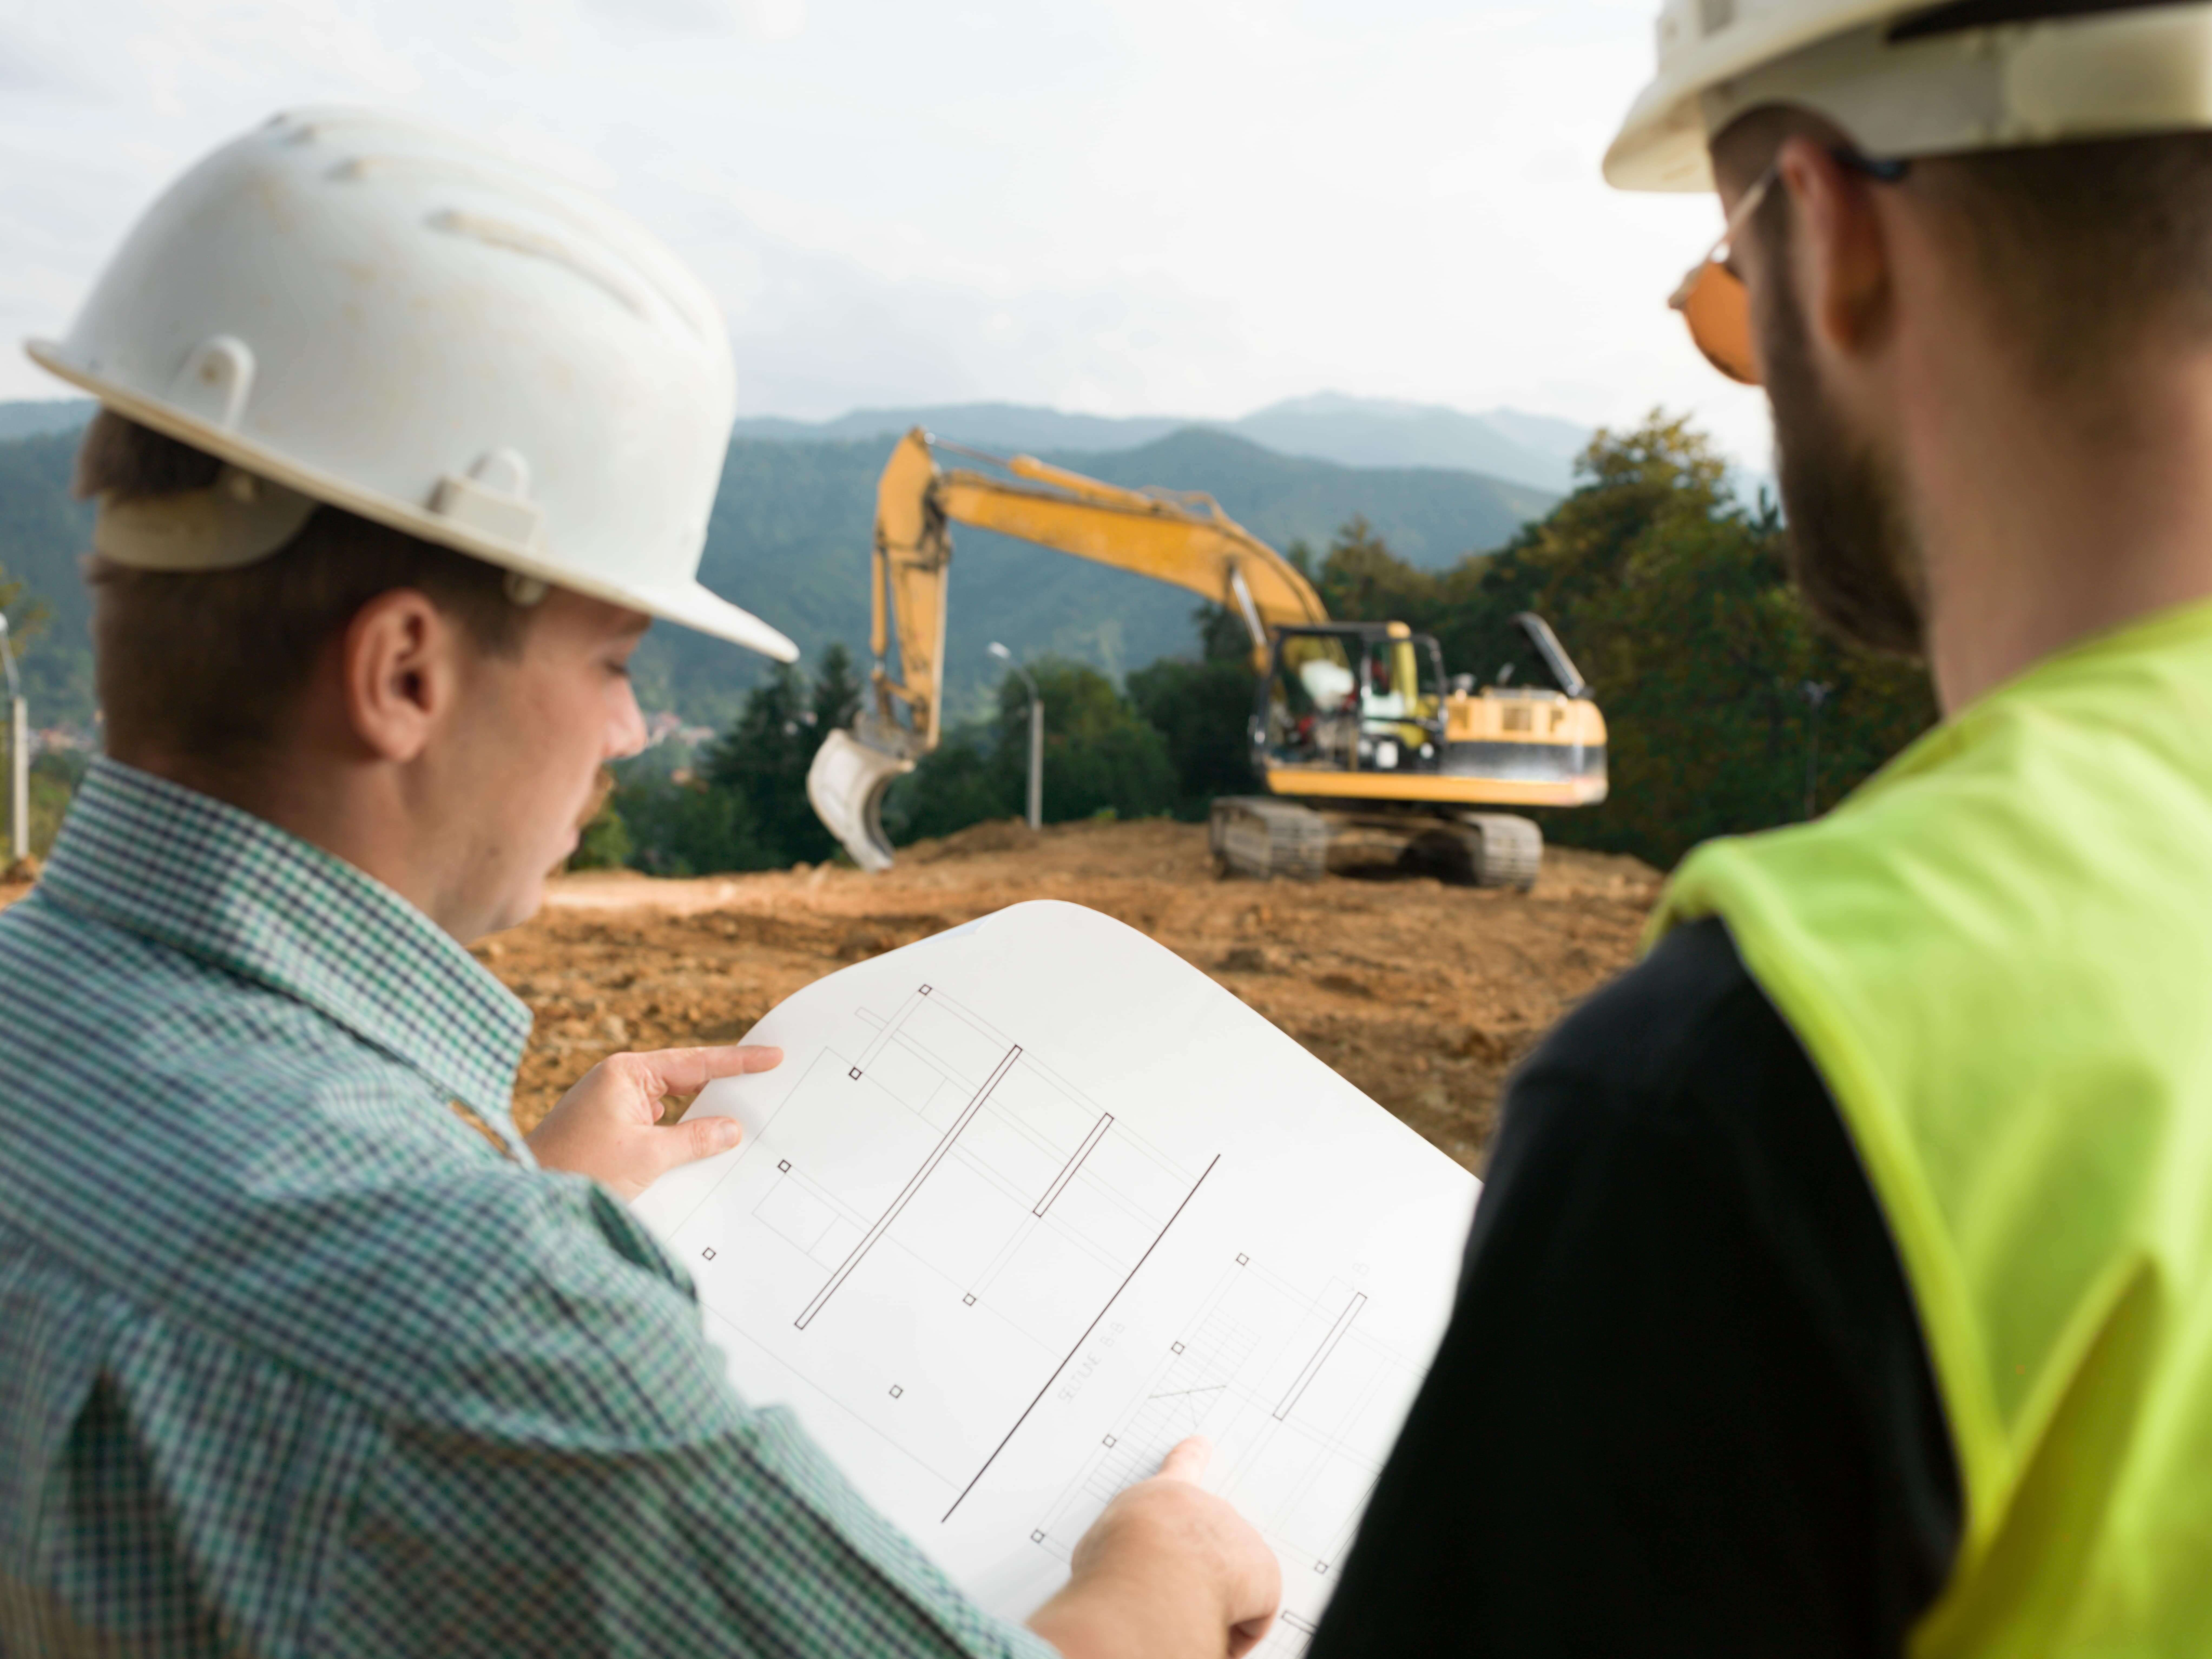 commercial contractor looking at plans, retail, commercial, grocery, commercial construction, commercial remodeling, commercial contractors near me, commercial building construction, commercial general contractors, general contractor, retail building design, national retail contractors, construction services, building